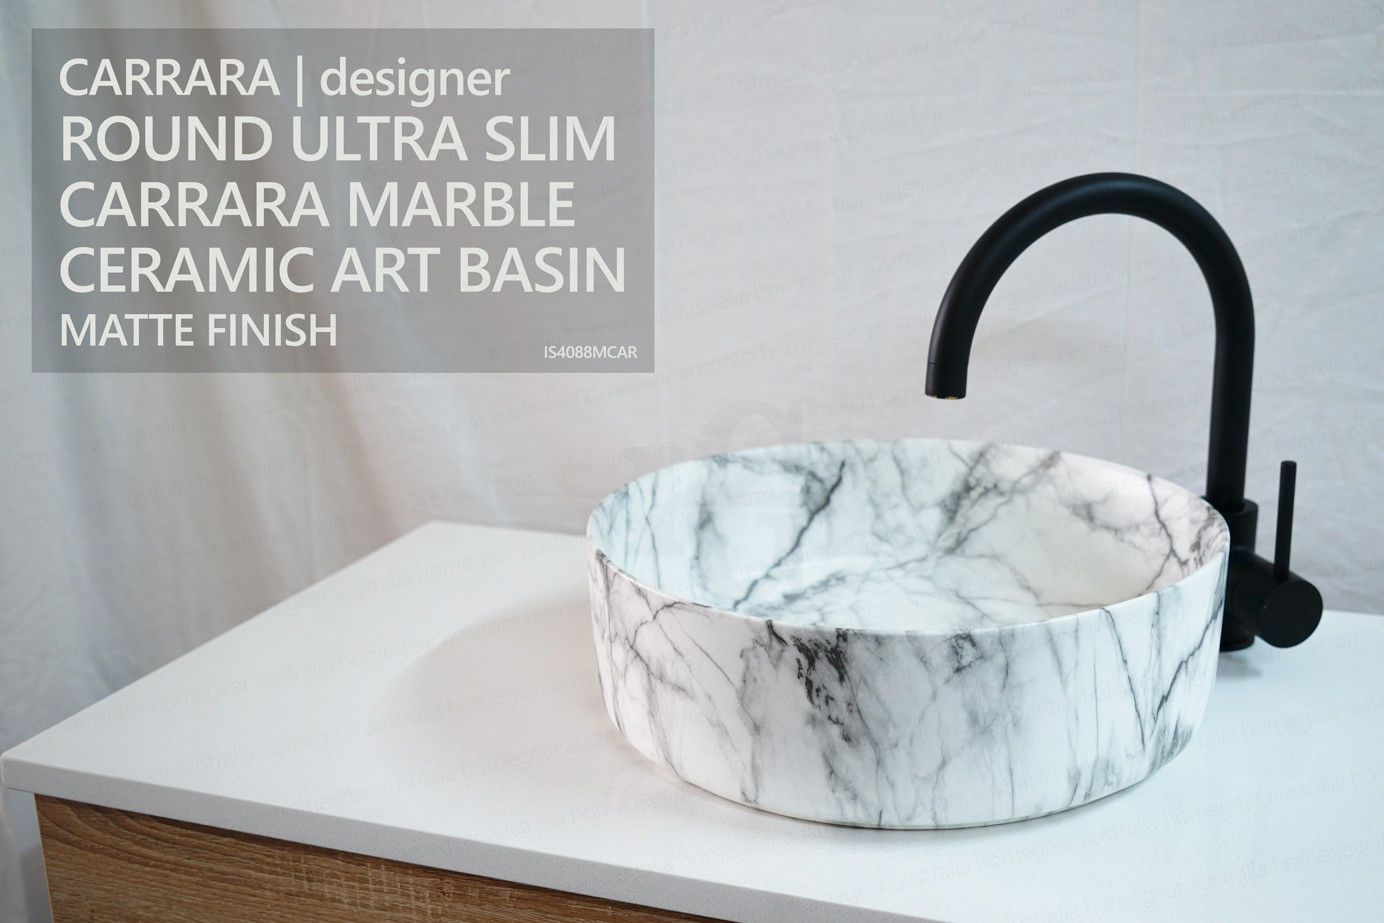 Marble Basin Carrara Round Carrara Marble Designer Above Counter Art Basin